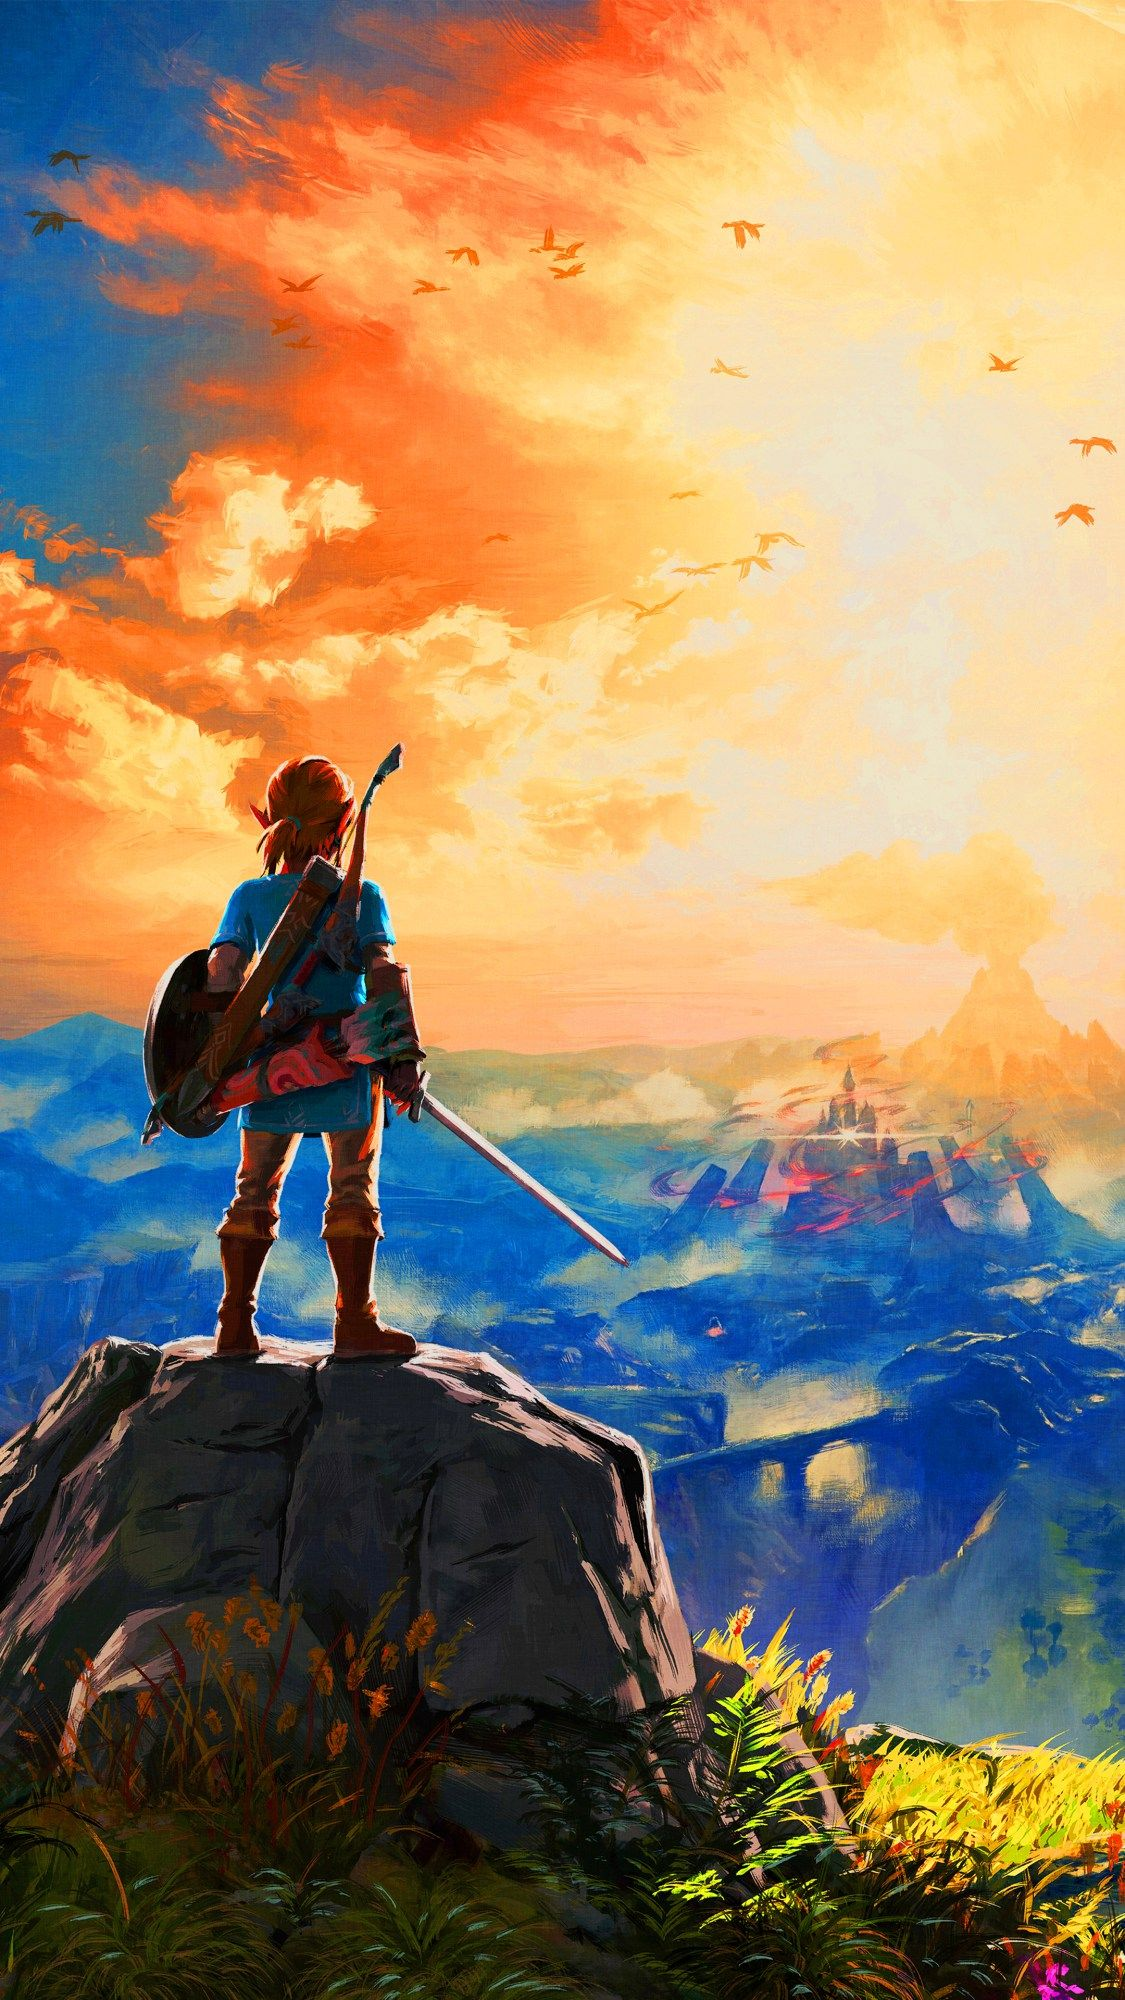 Botw Wallpaper Phone : wallpaper, phone, Zelda, Phone, Wallpapers, Backgrounds, WallpaperAccess